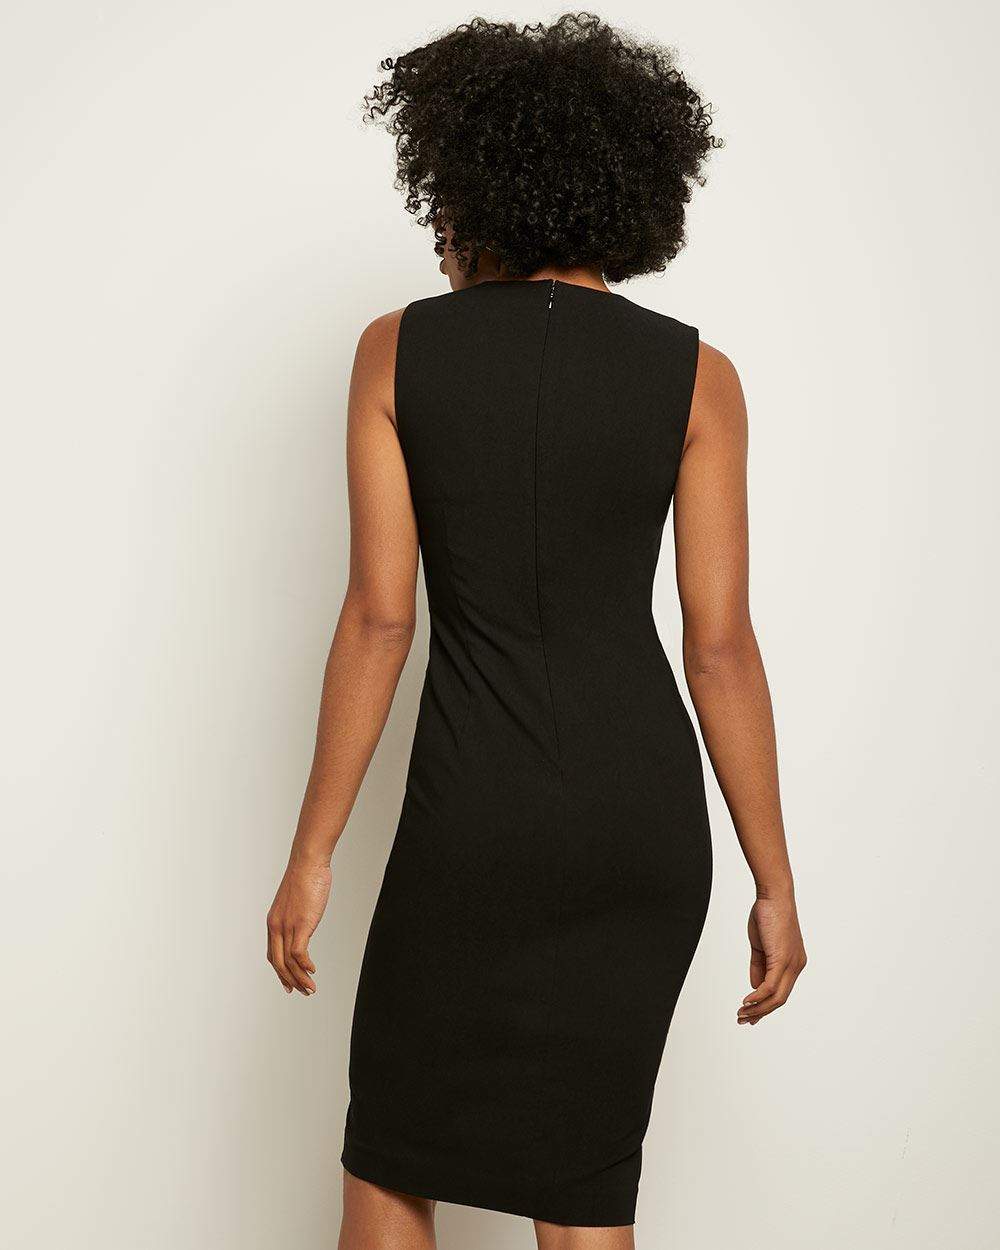 Black V-Neck Sheath City dress with Slits